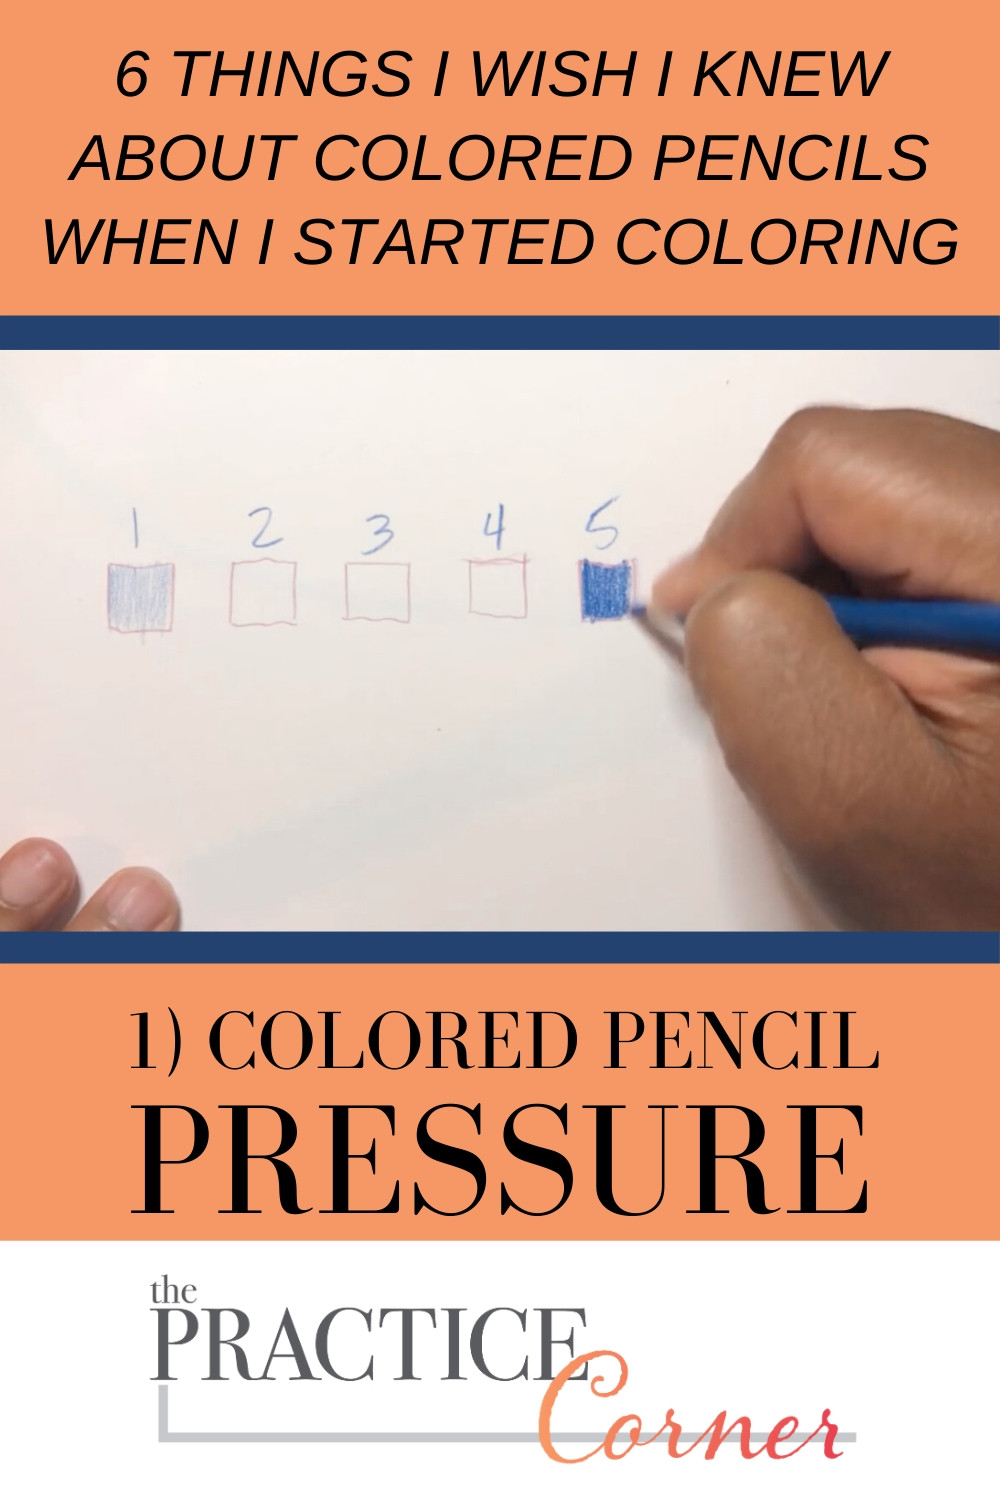 How to improve your coloring | What to practice with colored pencils | What to practice with Copic Markers | #coloredpencil #coloredpencilpractice #thepracticecorner #realisticcoloring #coloringtechniques #coloringingshadows